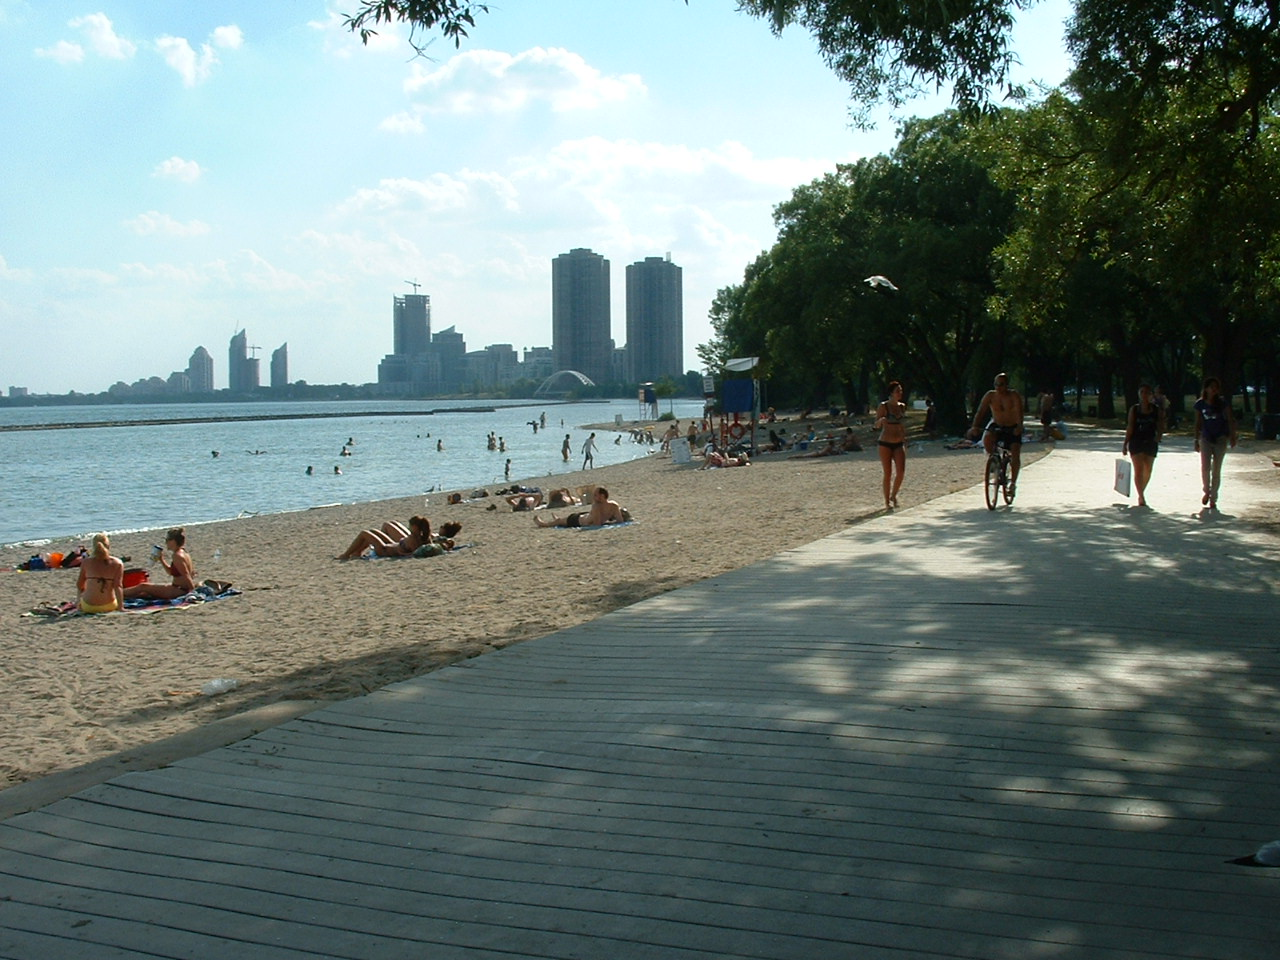 Toronto beaches erotic services for you!